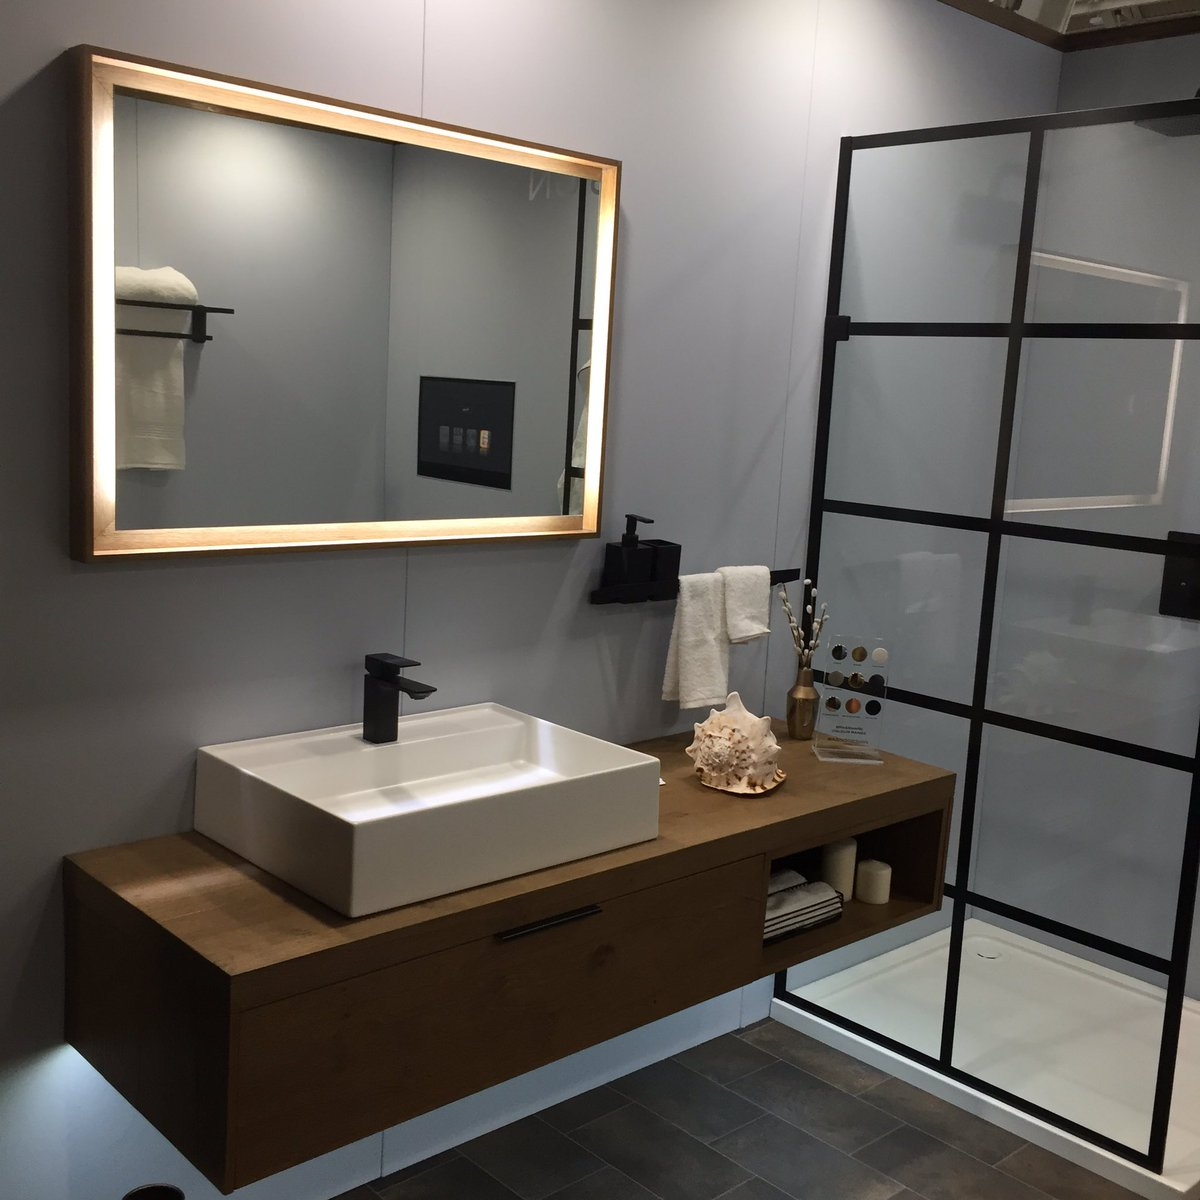 Bagno Design London Bagnodesign Uk On Twitter